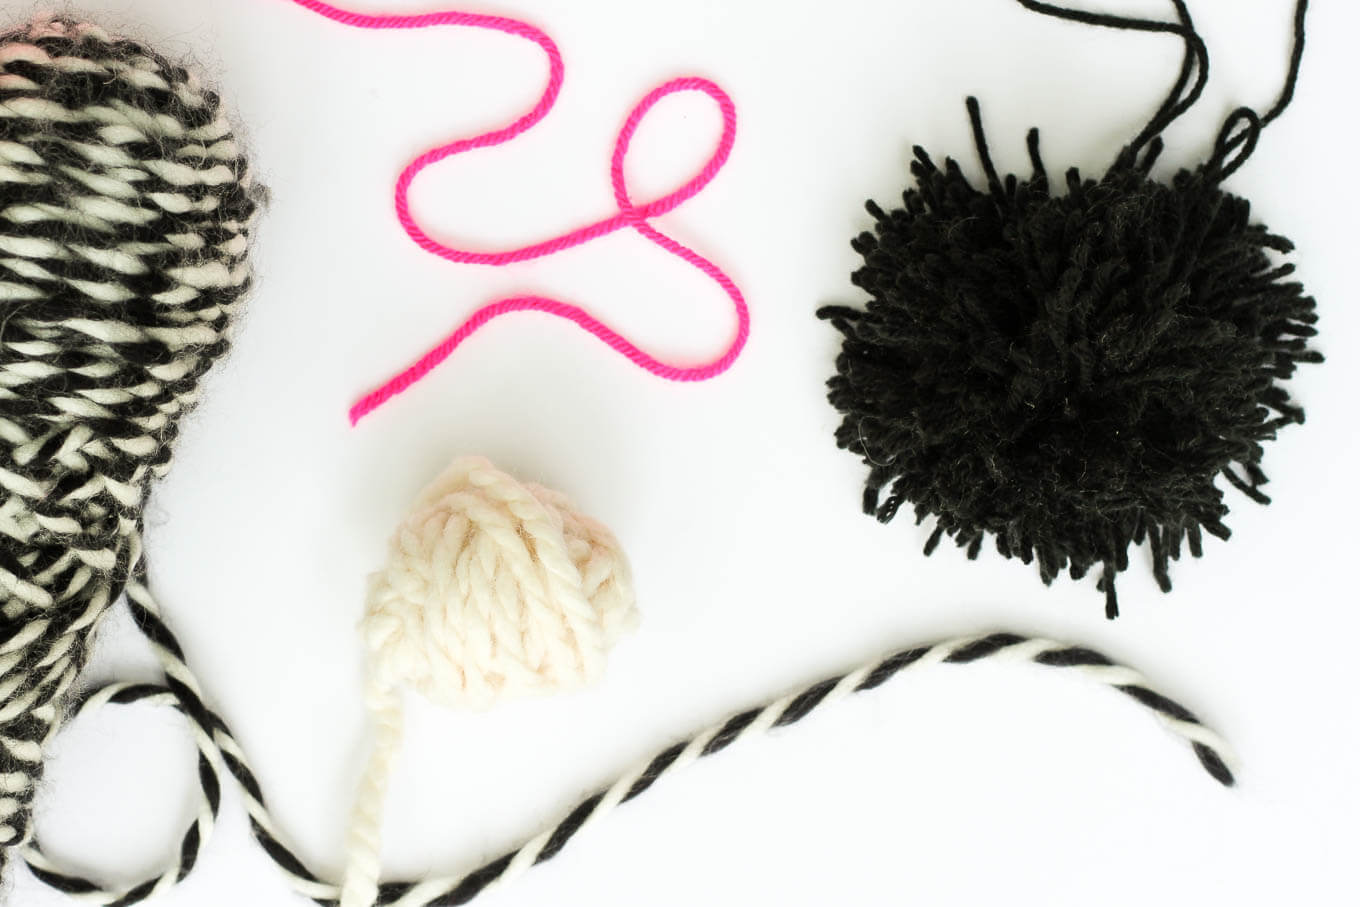 How to make a pom pom rug! This soft, scrumptiously squishy DIY pom pom rug takes very few skills to create and is a great way to use up a bunch of scrap yarn! Click for full tutorial. | MakeAndDoCrew.com